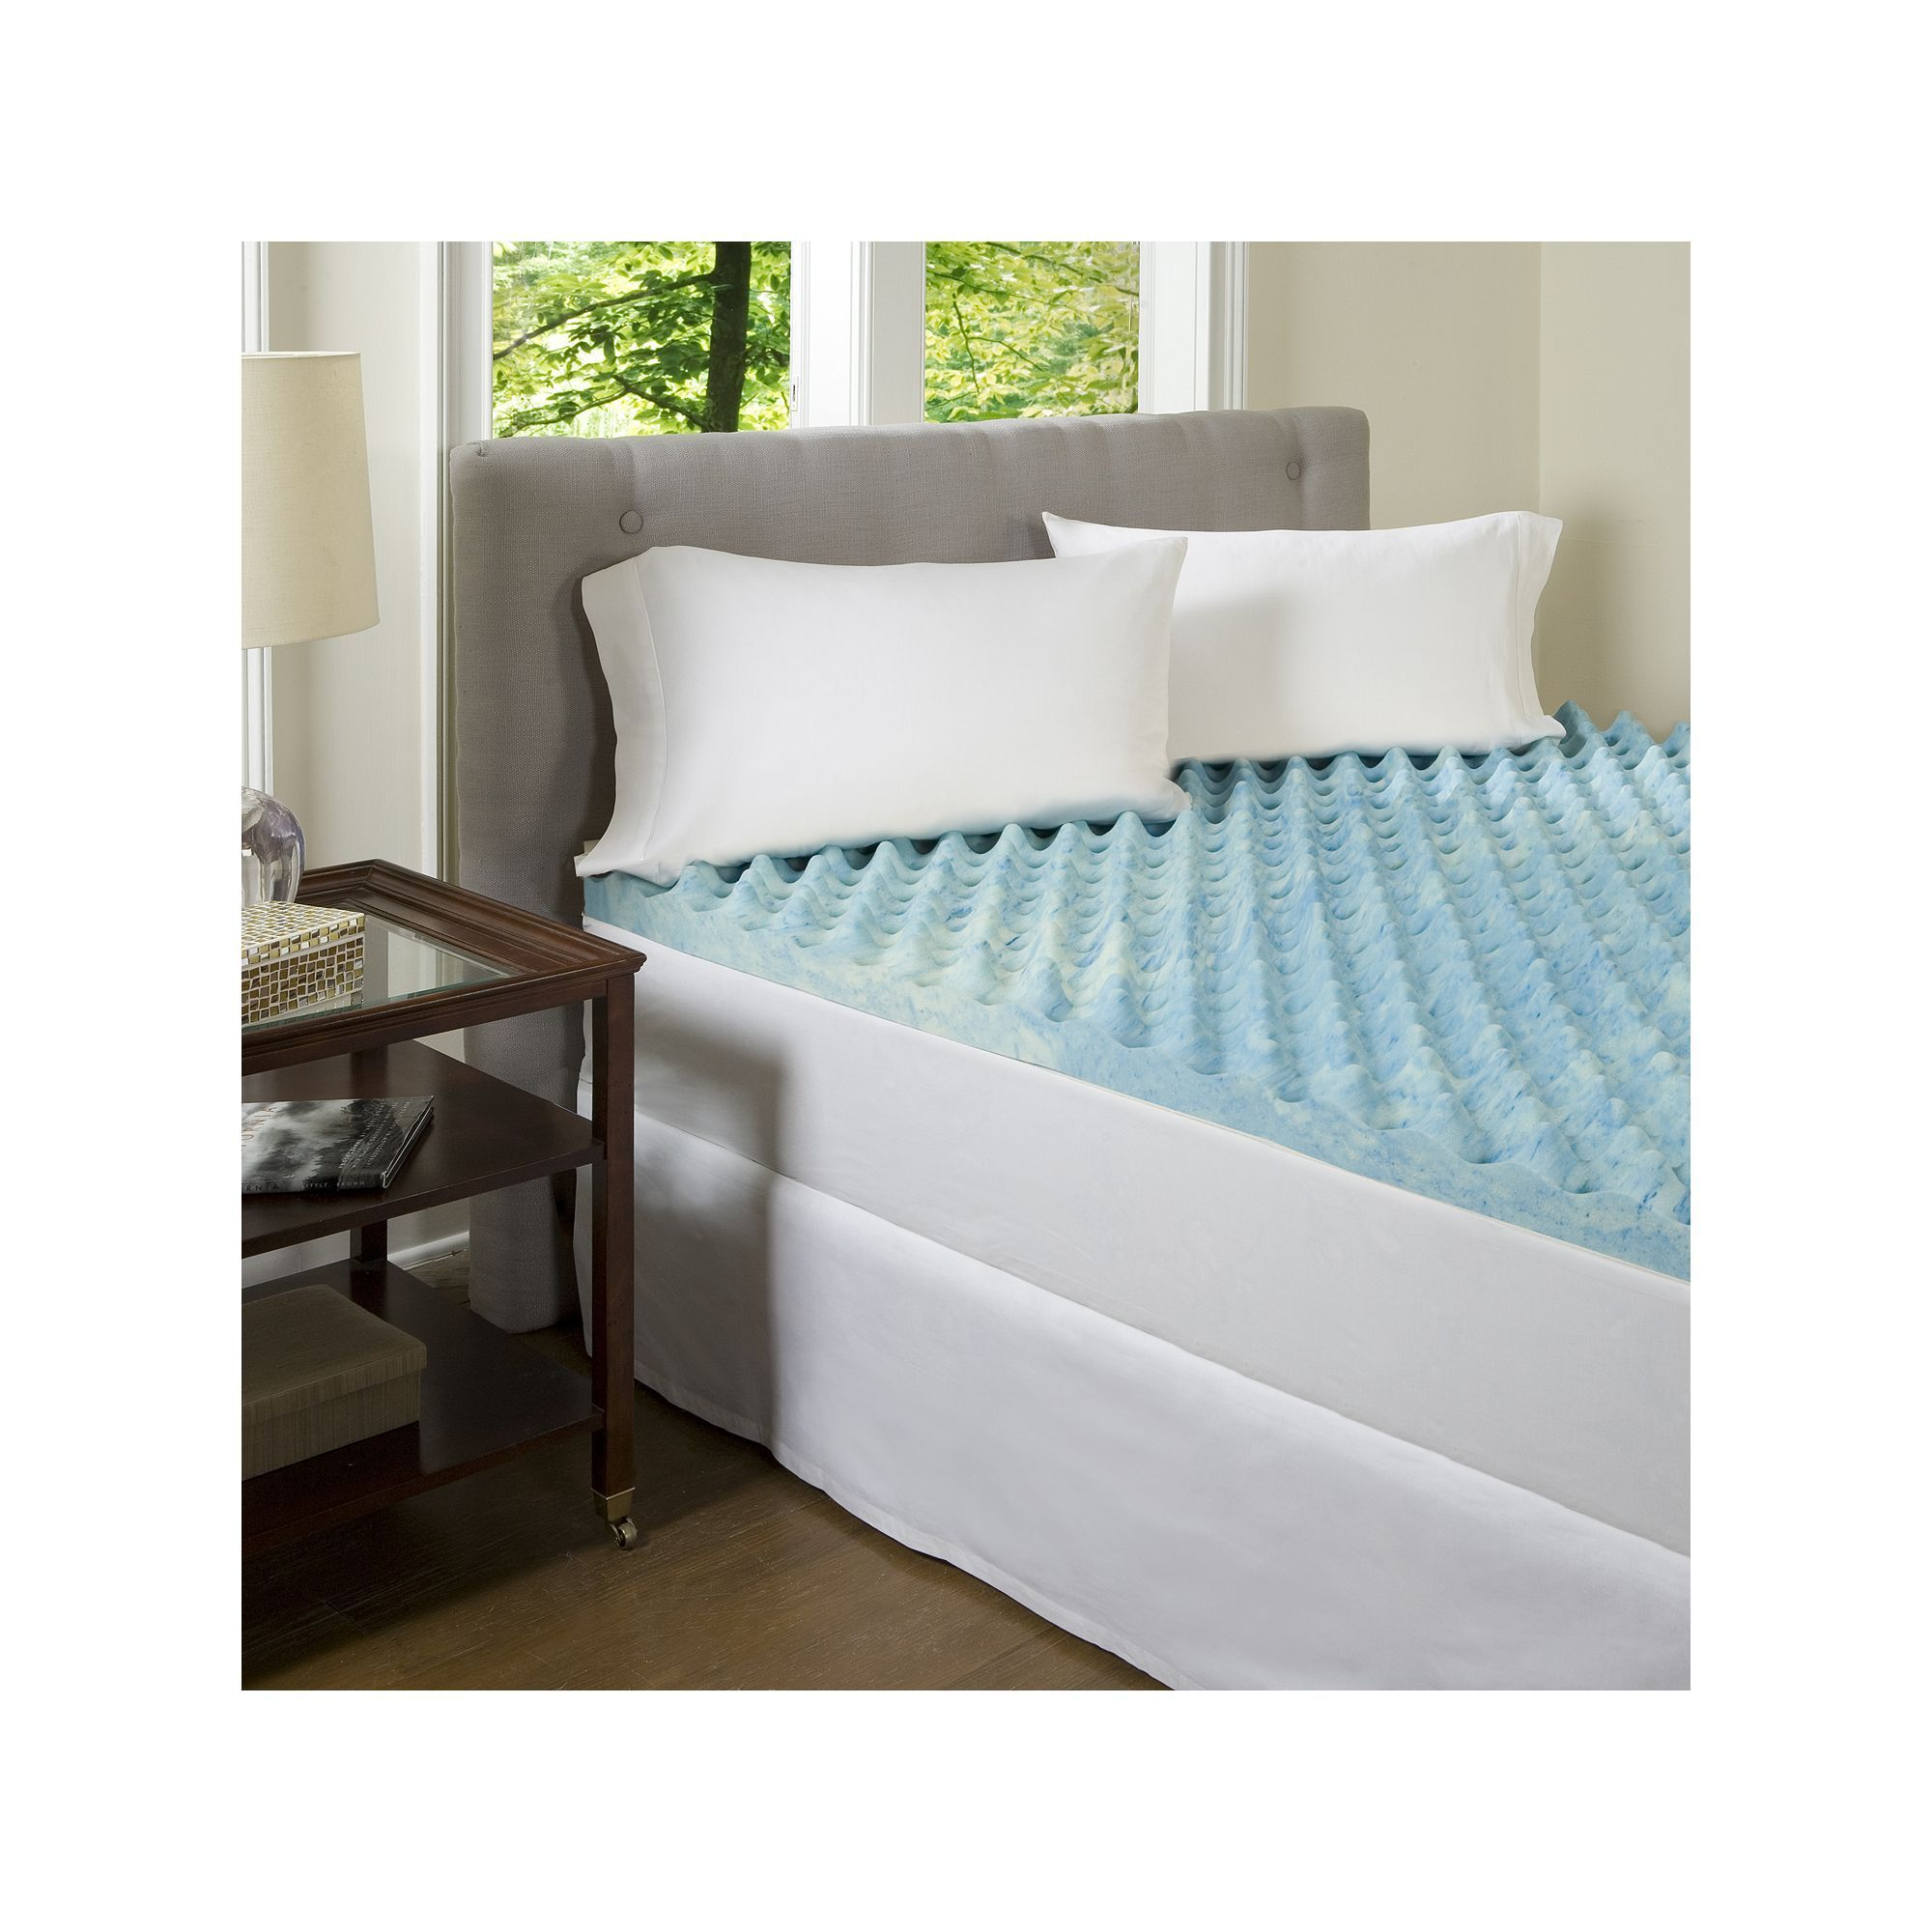 Comforpedic Beautyrest Big Comfort 3 In Gel Memory Foam Mattress